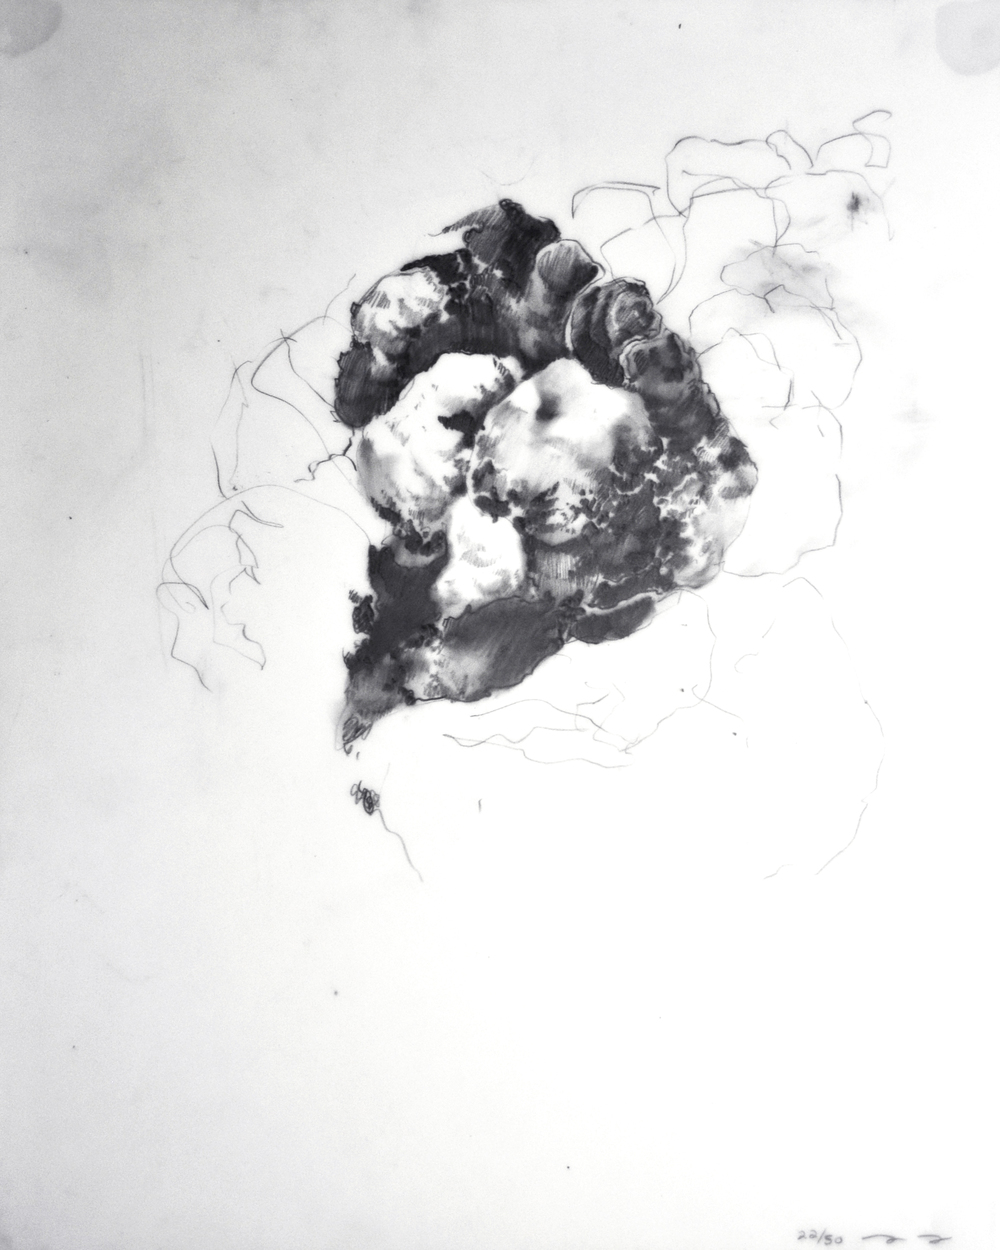 Graphite drawing by Ming Ying Hong (1 of 50), 2015